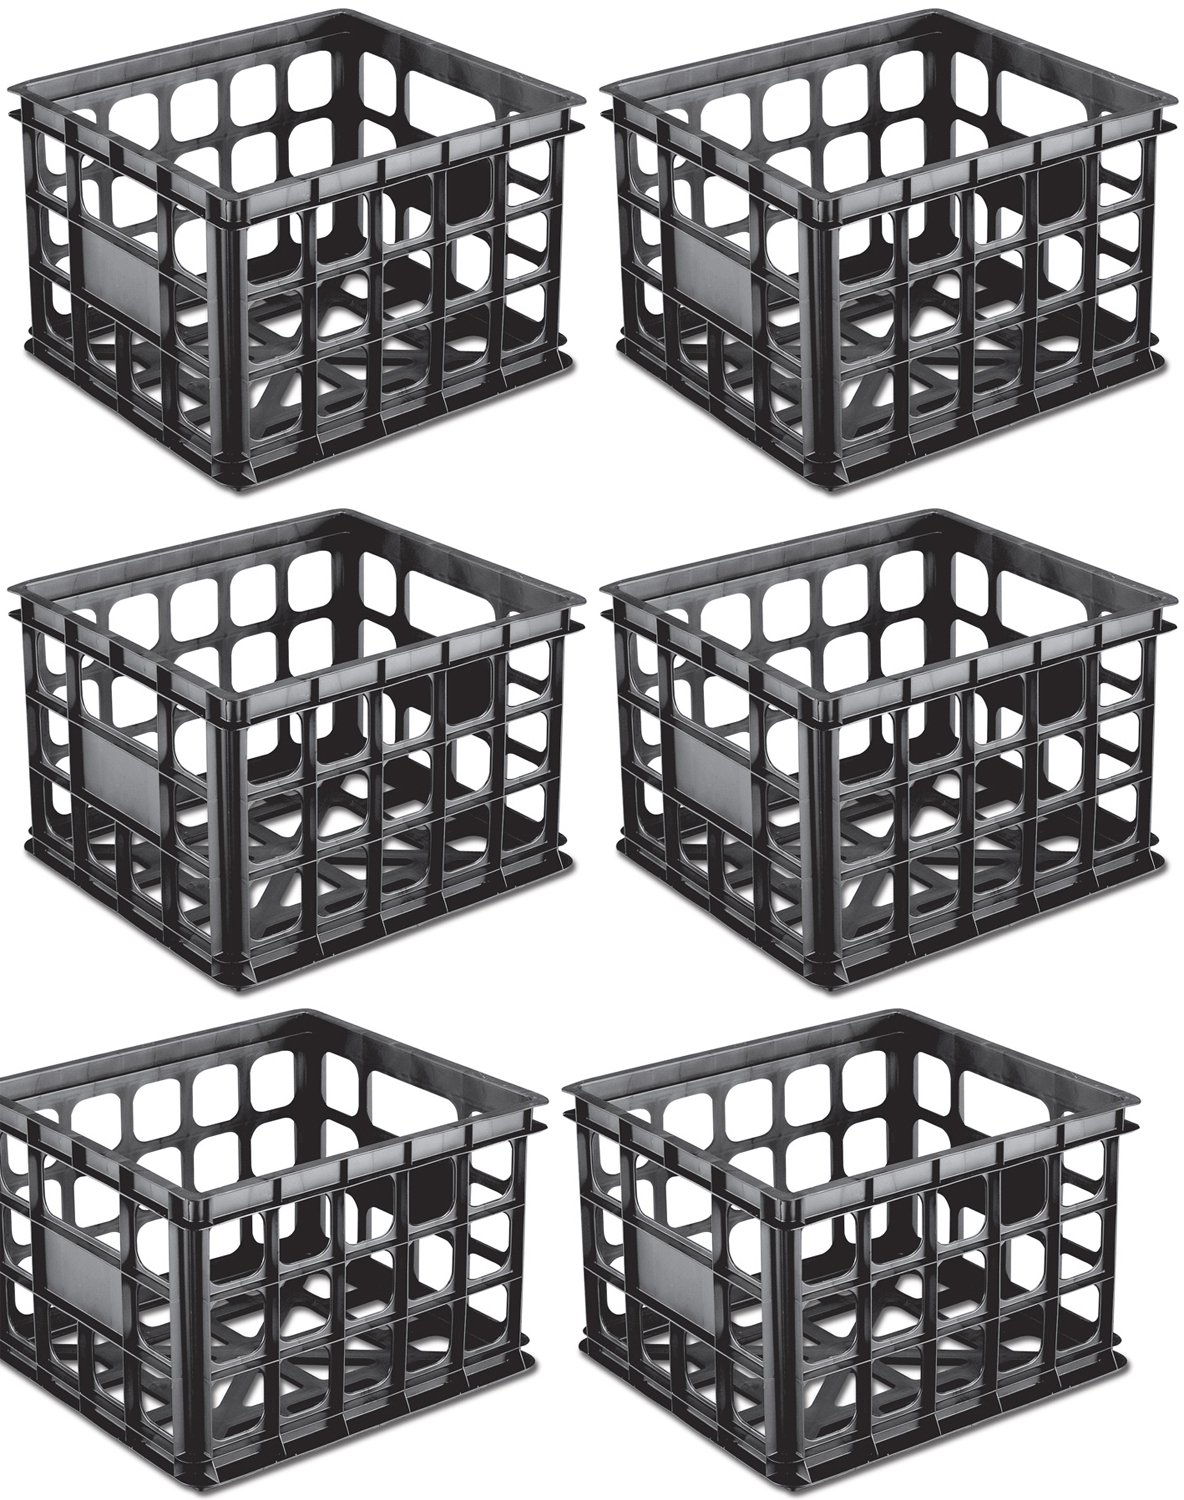 Charmant Sterilite Plastic Black Storage Box Milk Crate Containers Home (6 Pack)  16929006